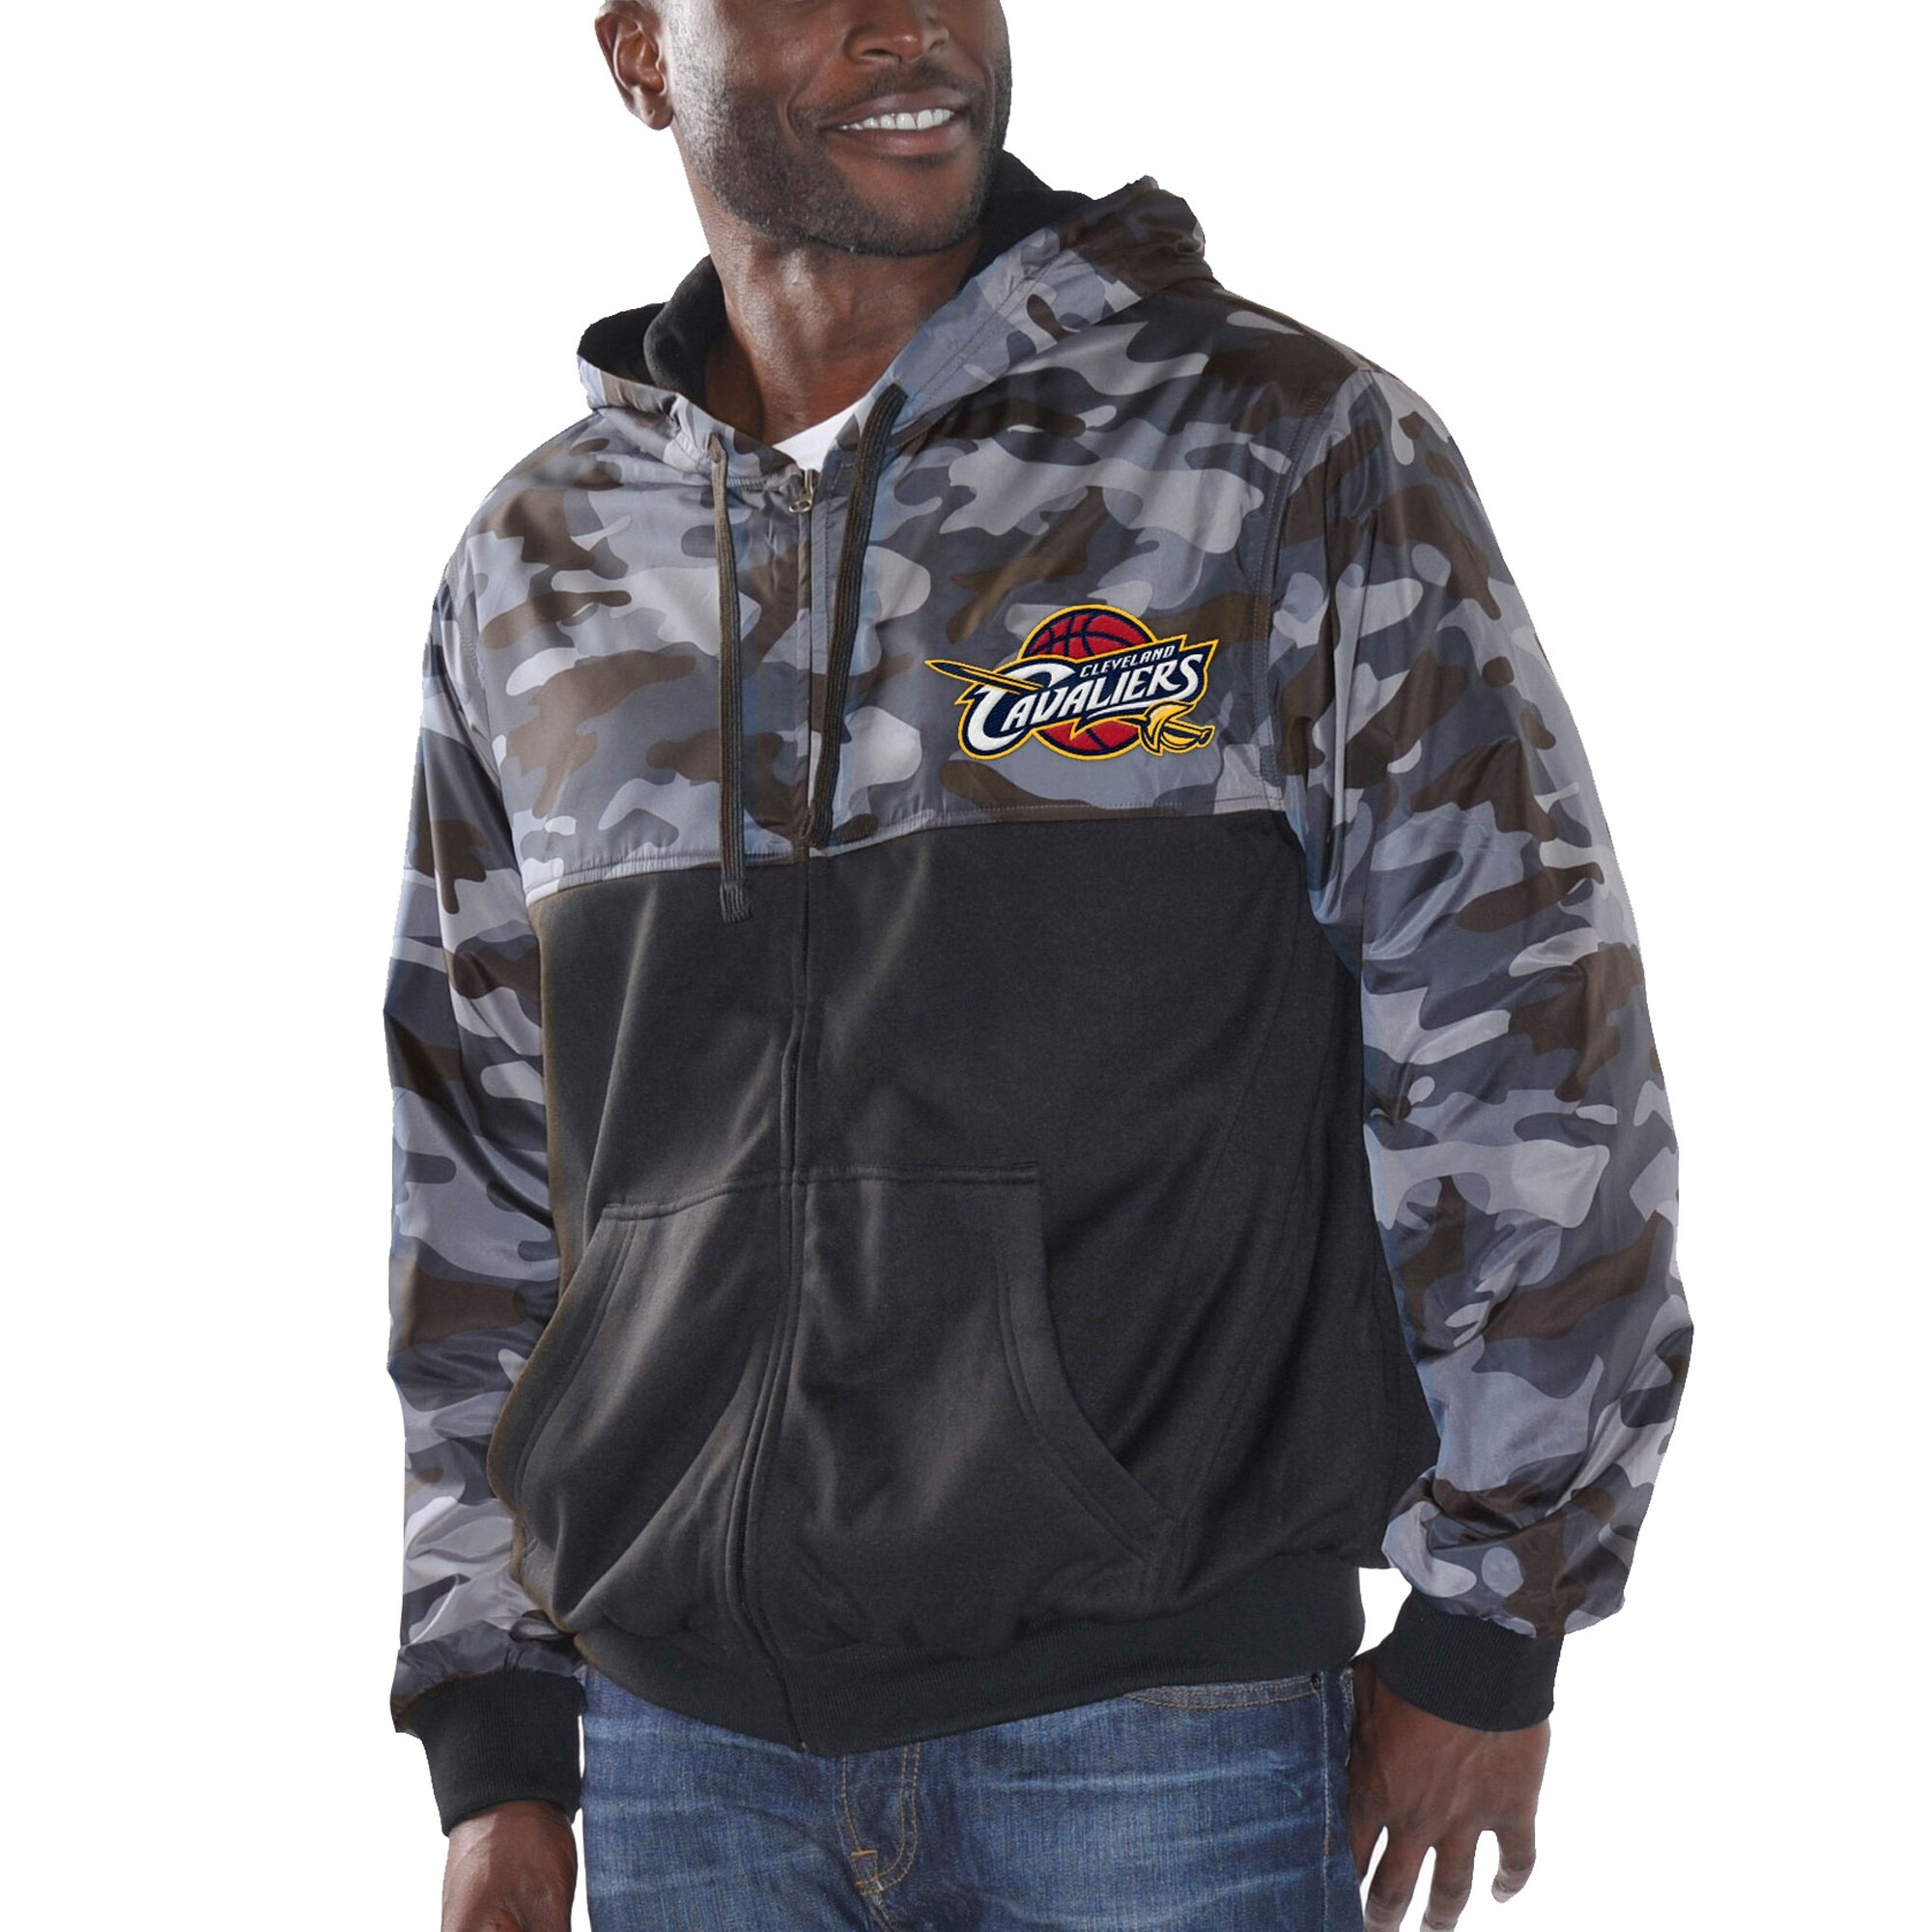 Cleveland Cavaliers G-III Sports by Carl Banks Crossover Lightweight Full Zip Jacket - Black/Camo